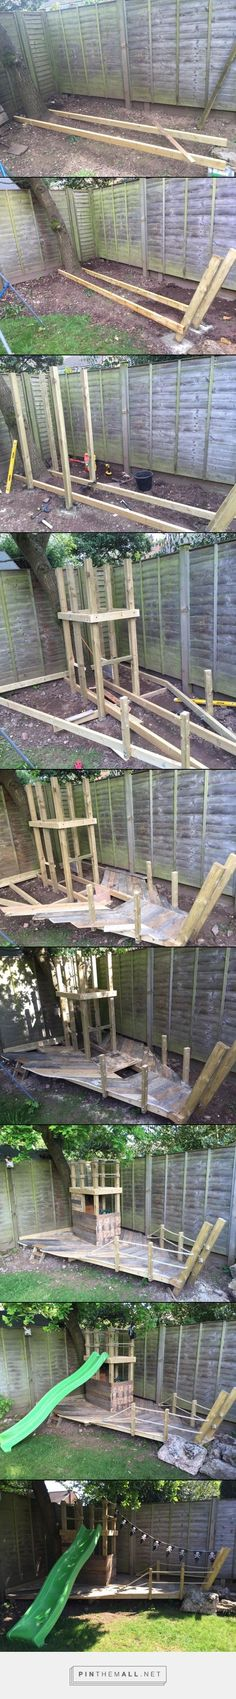 DIY Pirate Ship Treehouse / Playhouse. Made from Recycled Pallets - created via https://pinthemall.net